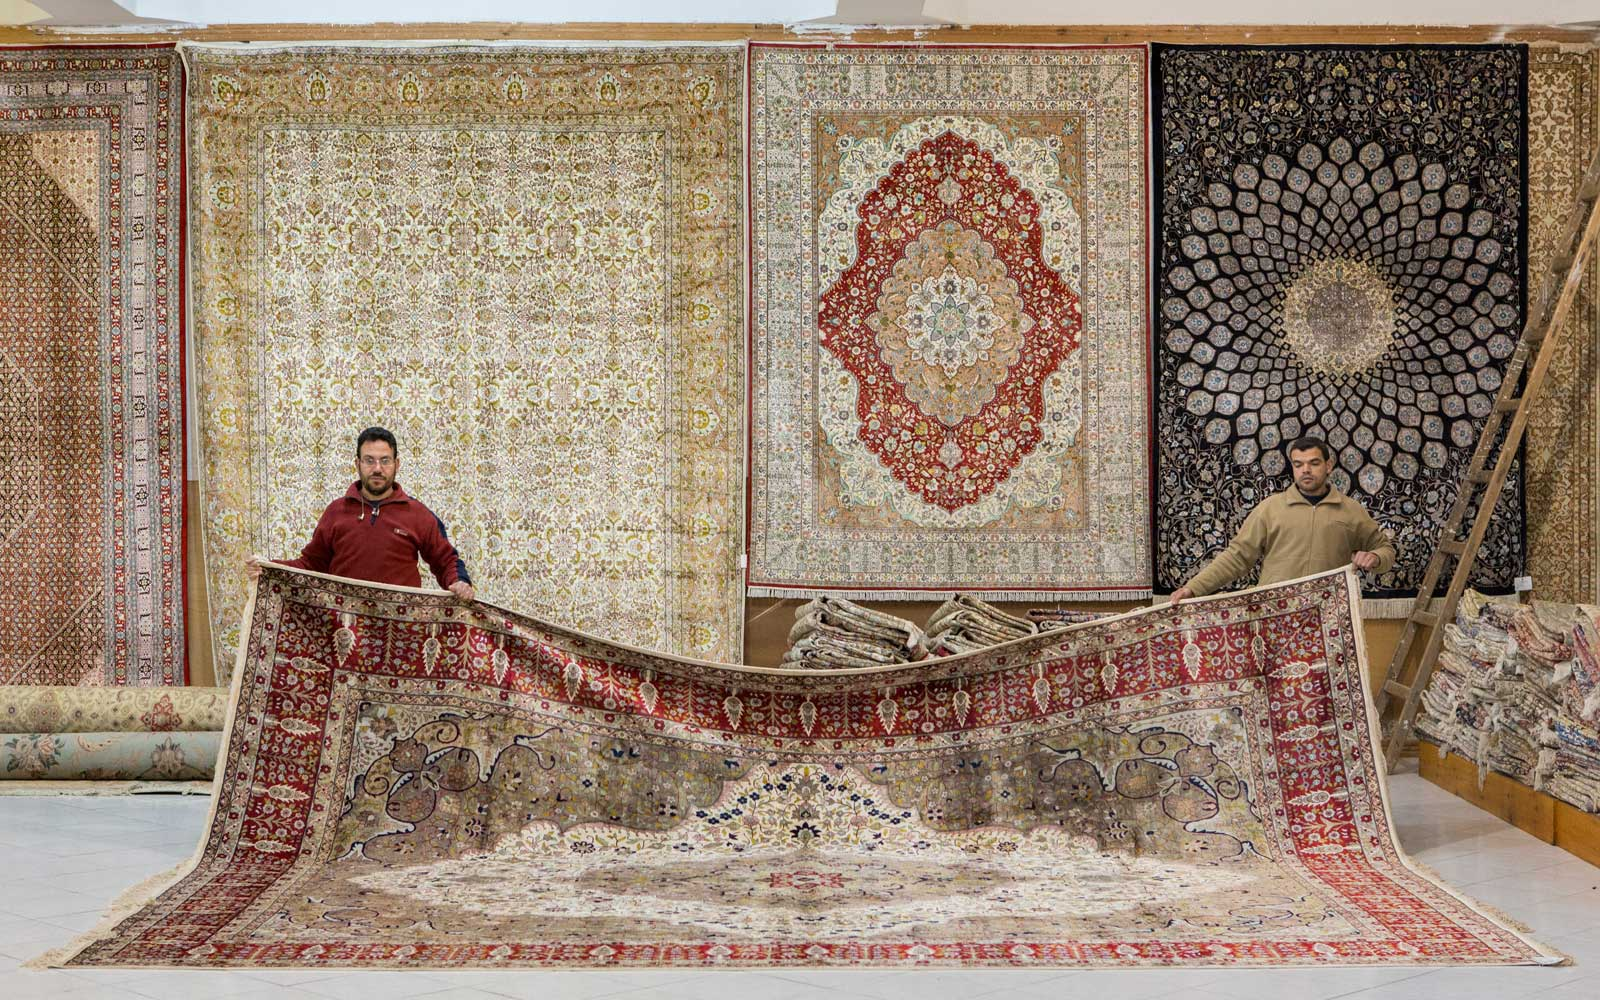 Rug makers in Egypt